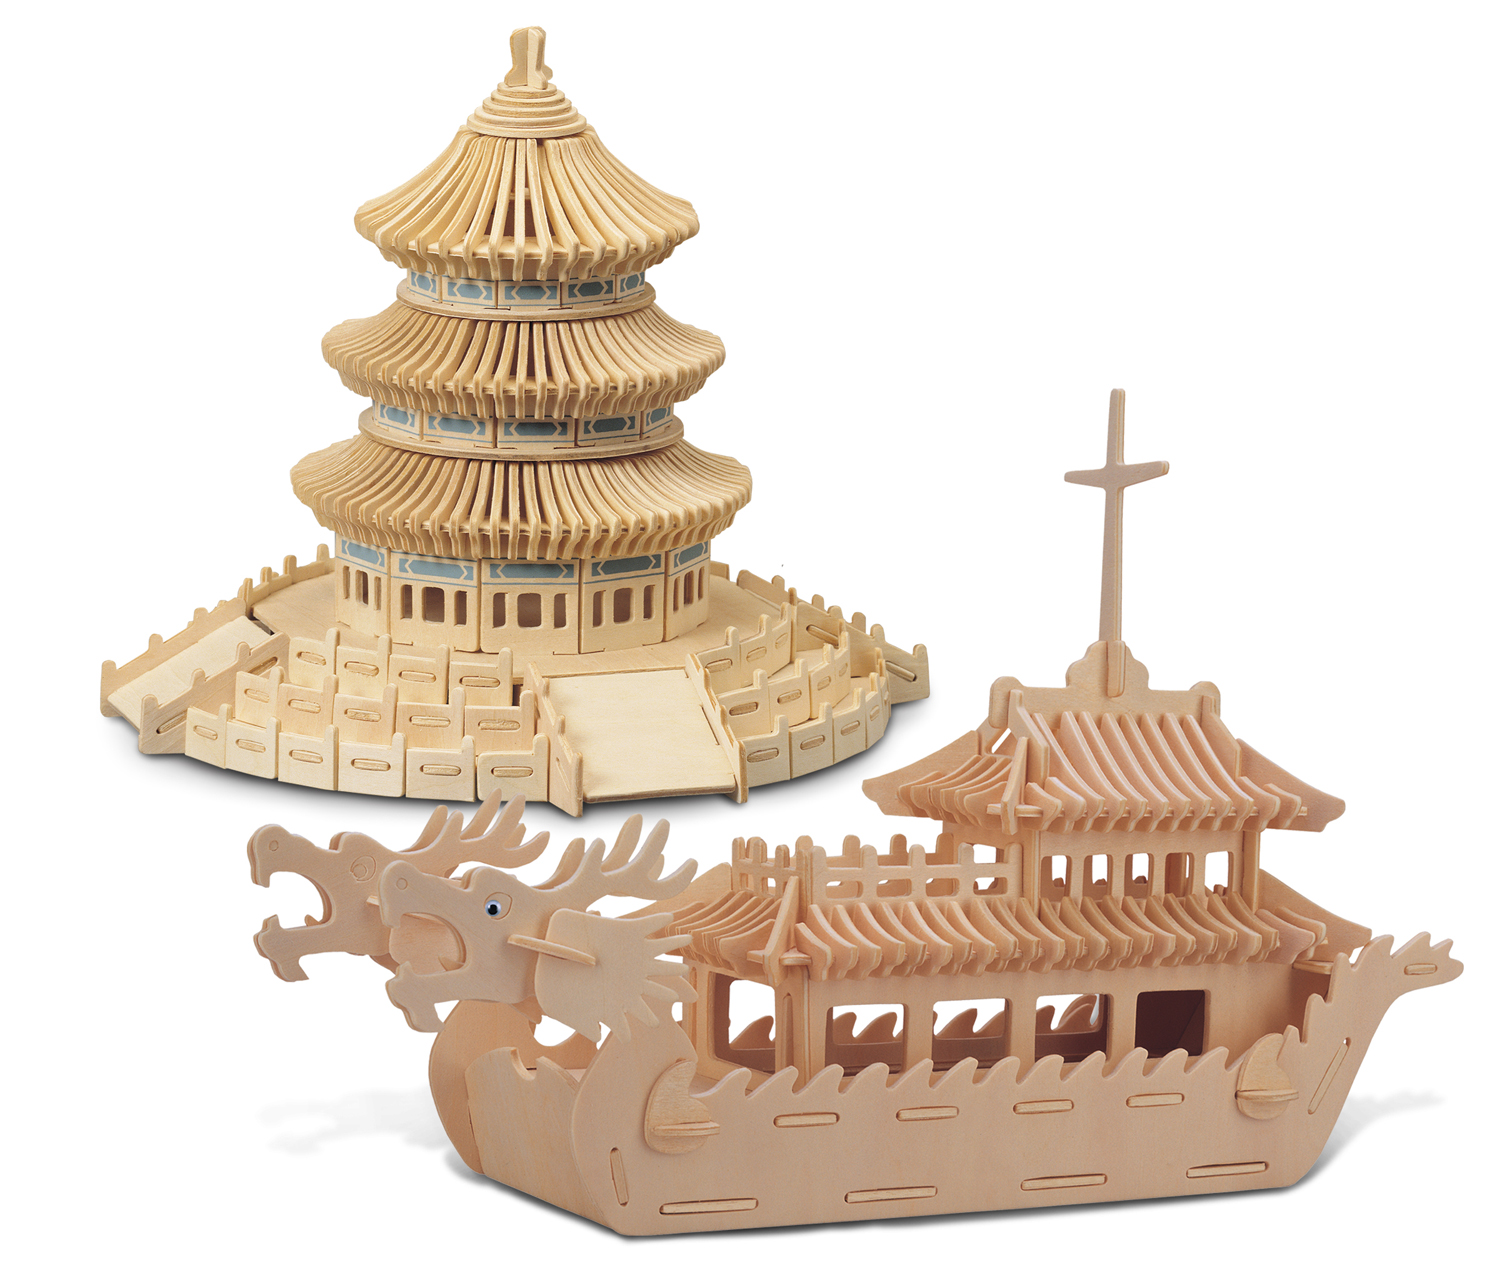 Puzzled Dragon Boat and Temple of Heaven Wooden 3D Puzzle Construction Kit by Puzzled Inc